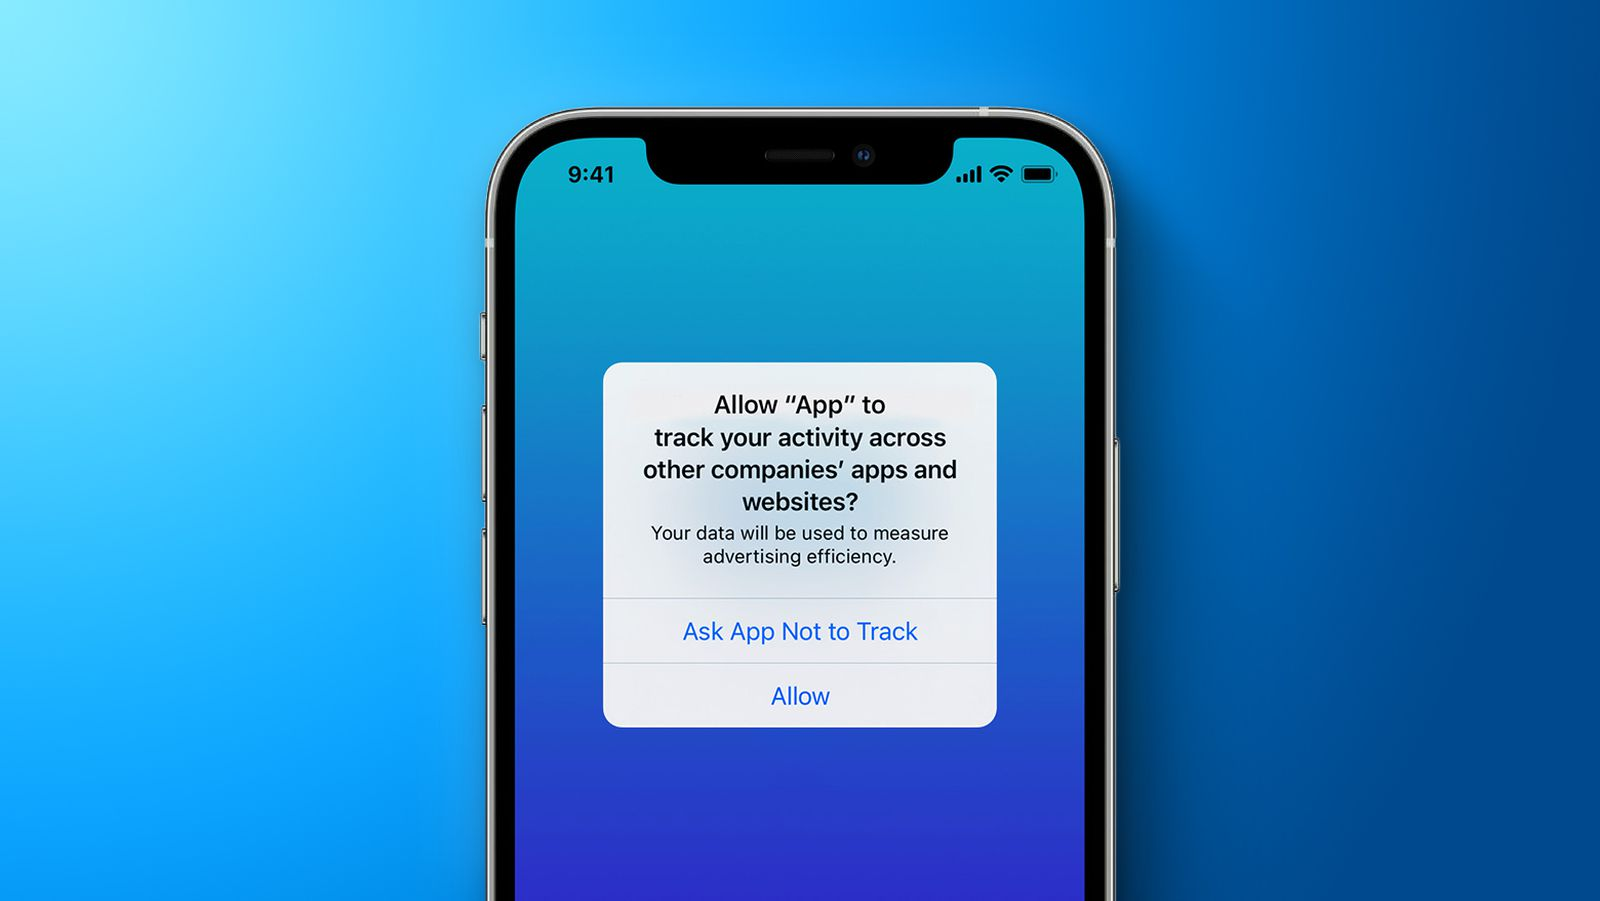 Apple is facing increasing pressure to tighten its App Tracking Transparency rules after it was found that third parties are using workarounds to iden